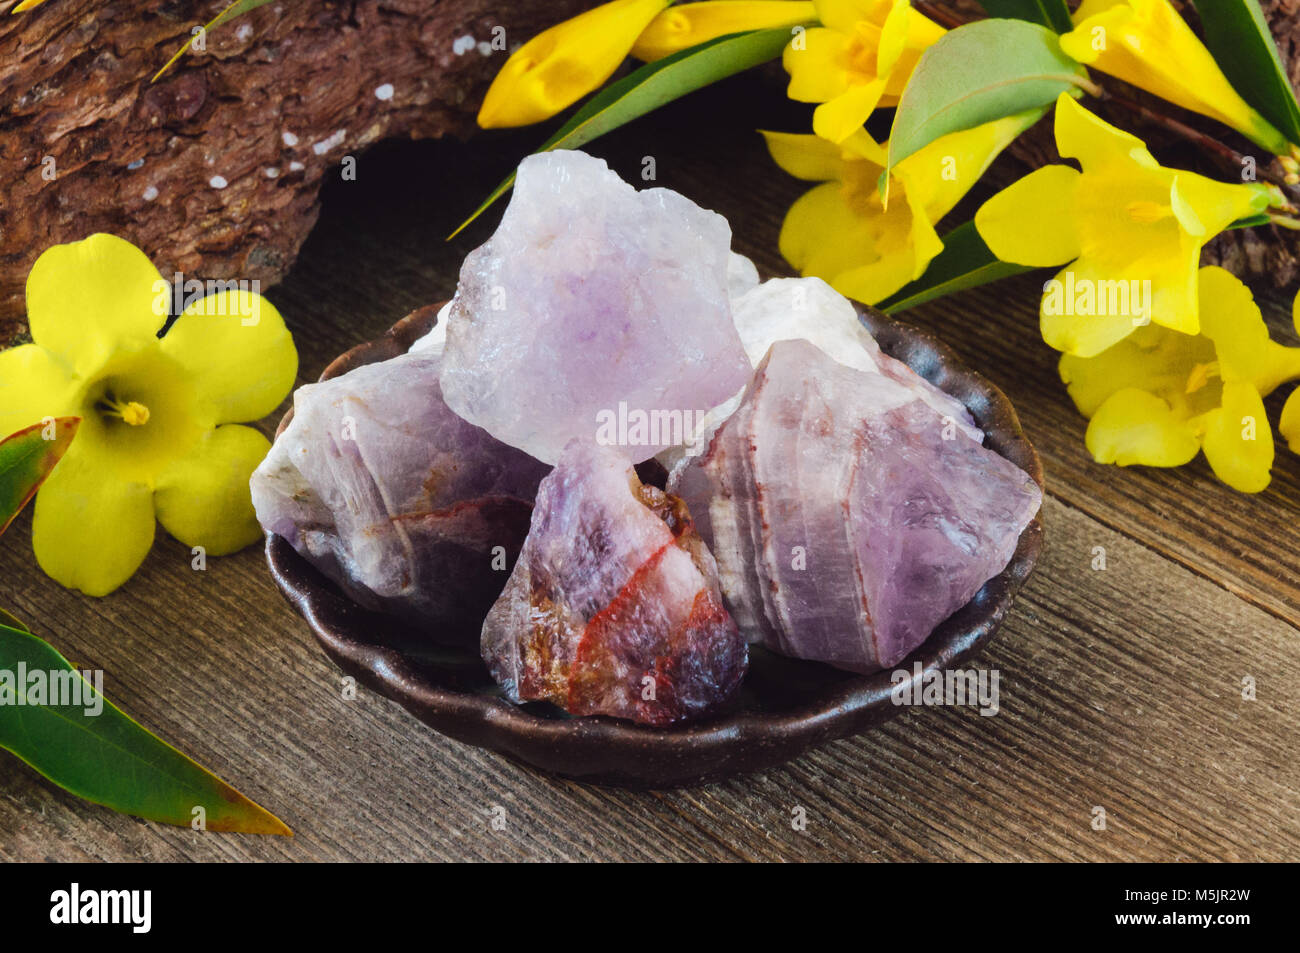 Ceramic Bowl of Rough Amethyst on Rustic Background - Stock Image